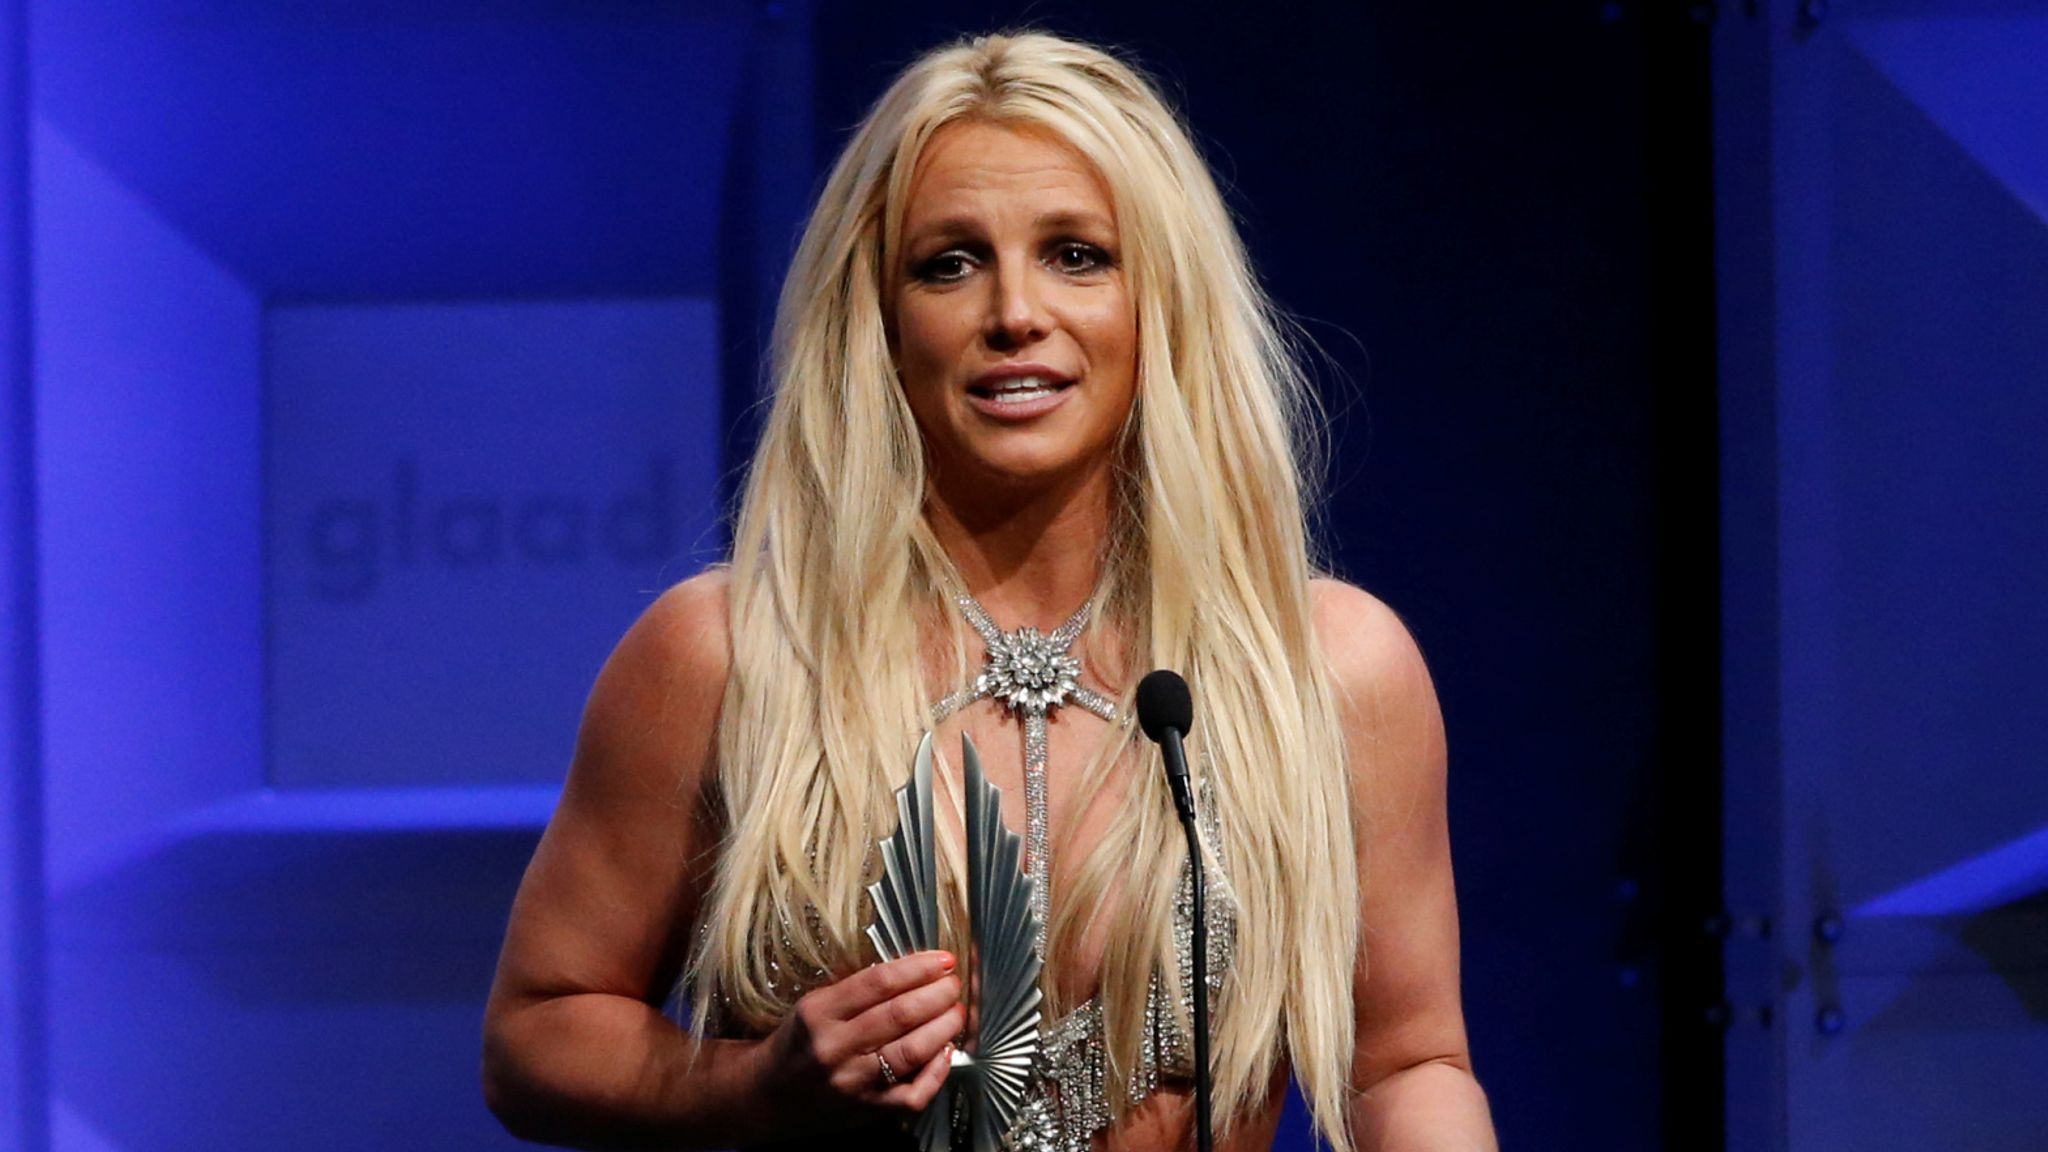 Britney Spears accepts the Vanguard Award at the 29th Annual GLAAD Media Awards in Beverly Hills in 2018